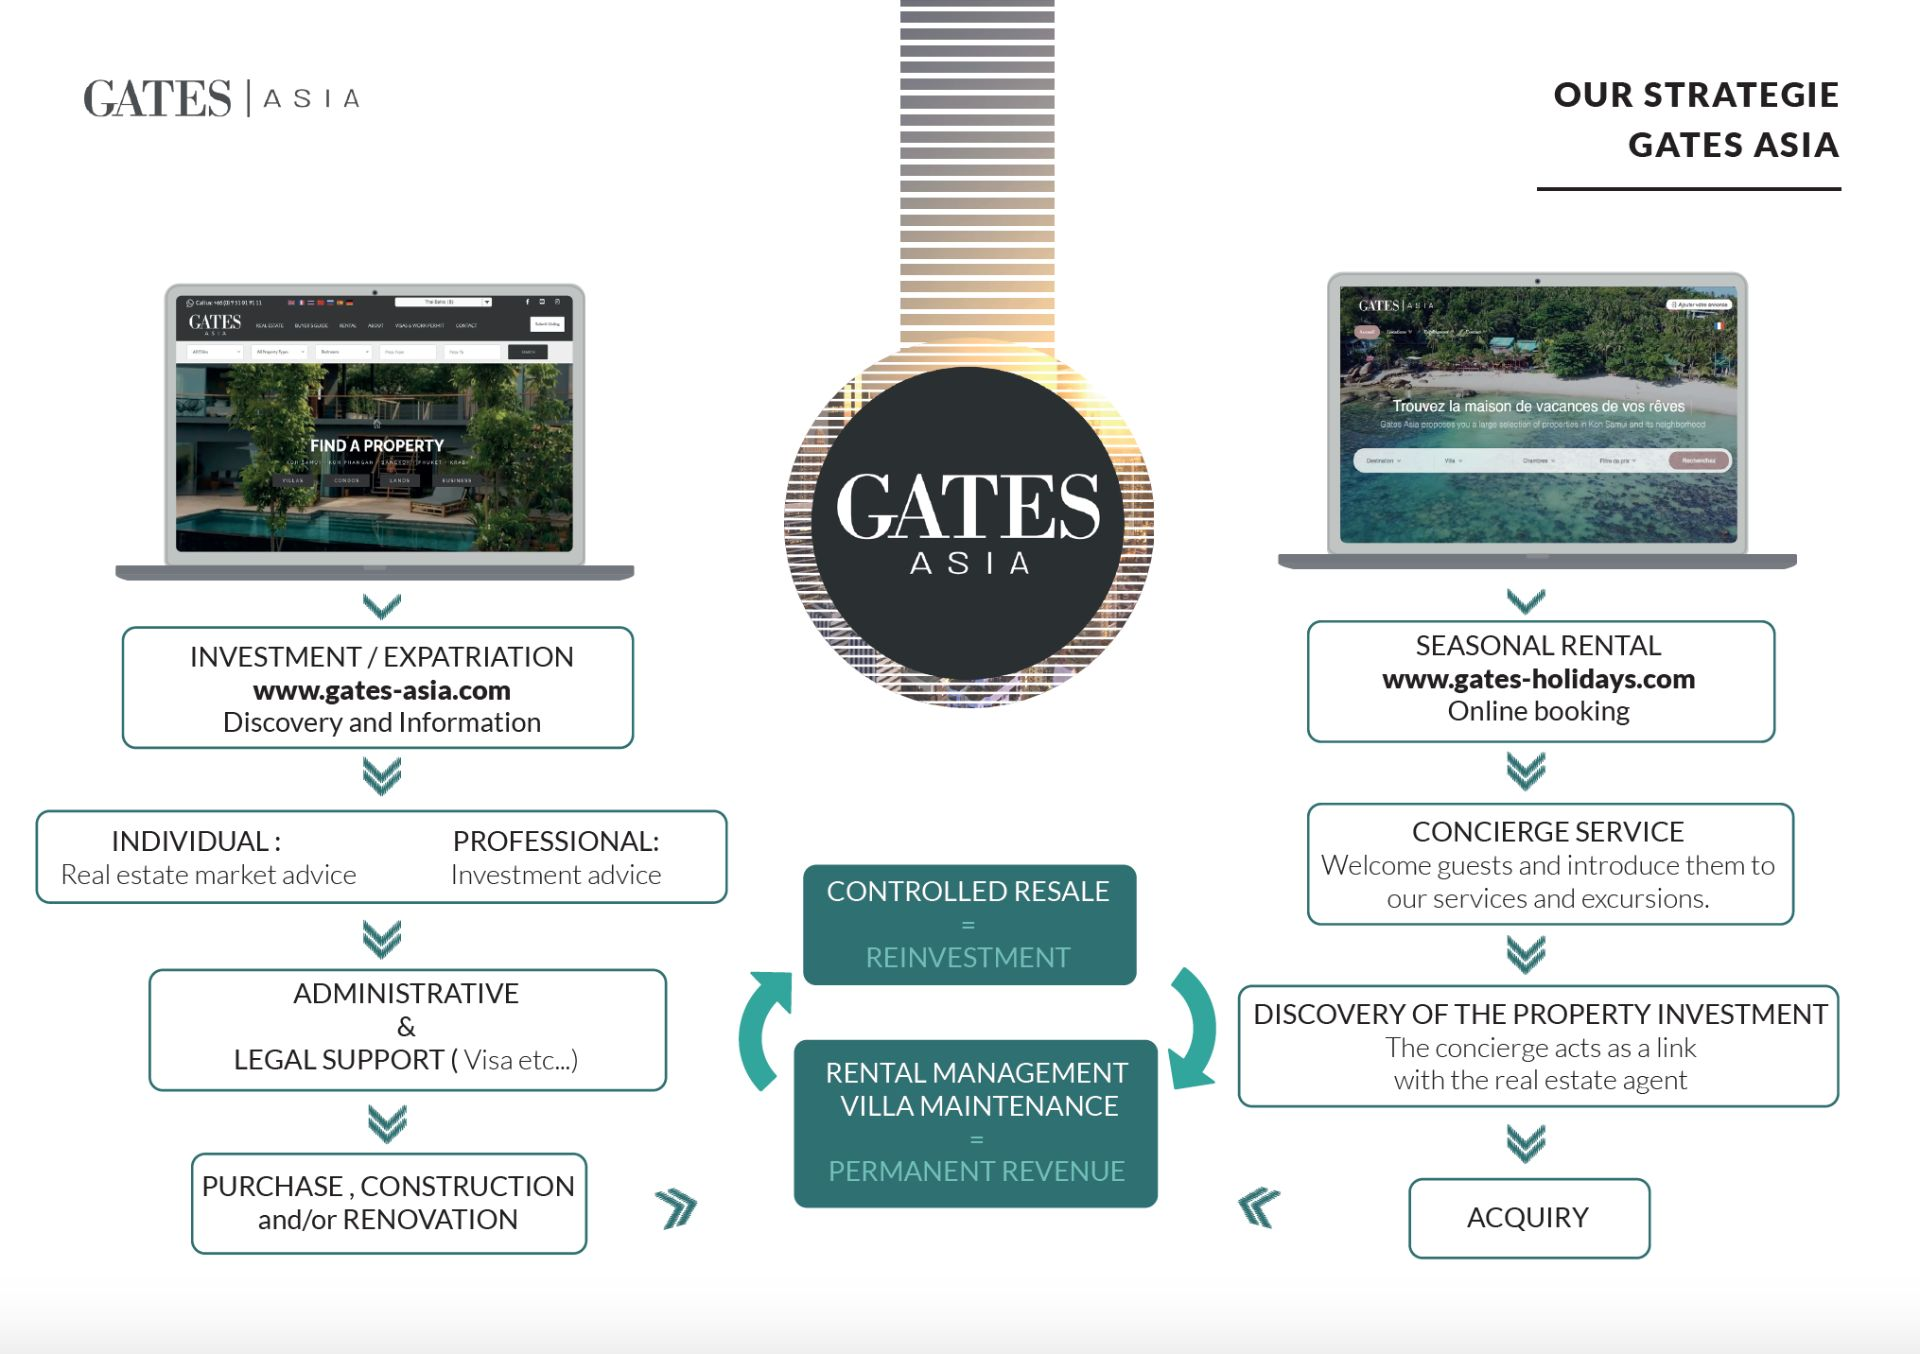 Gates Asia Strategy Real Estate in Thailand